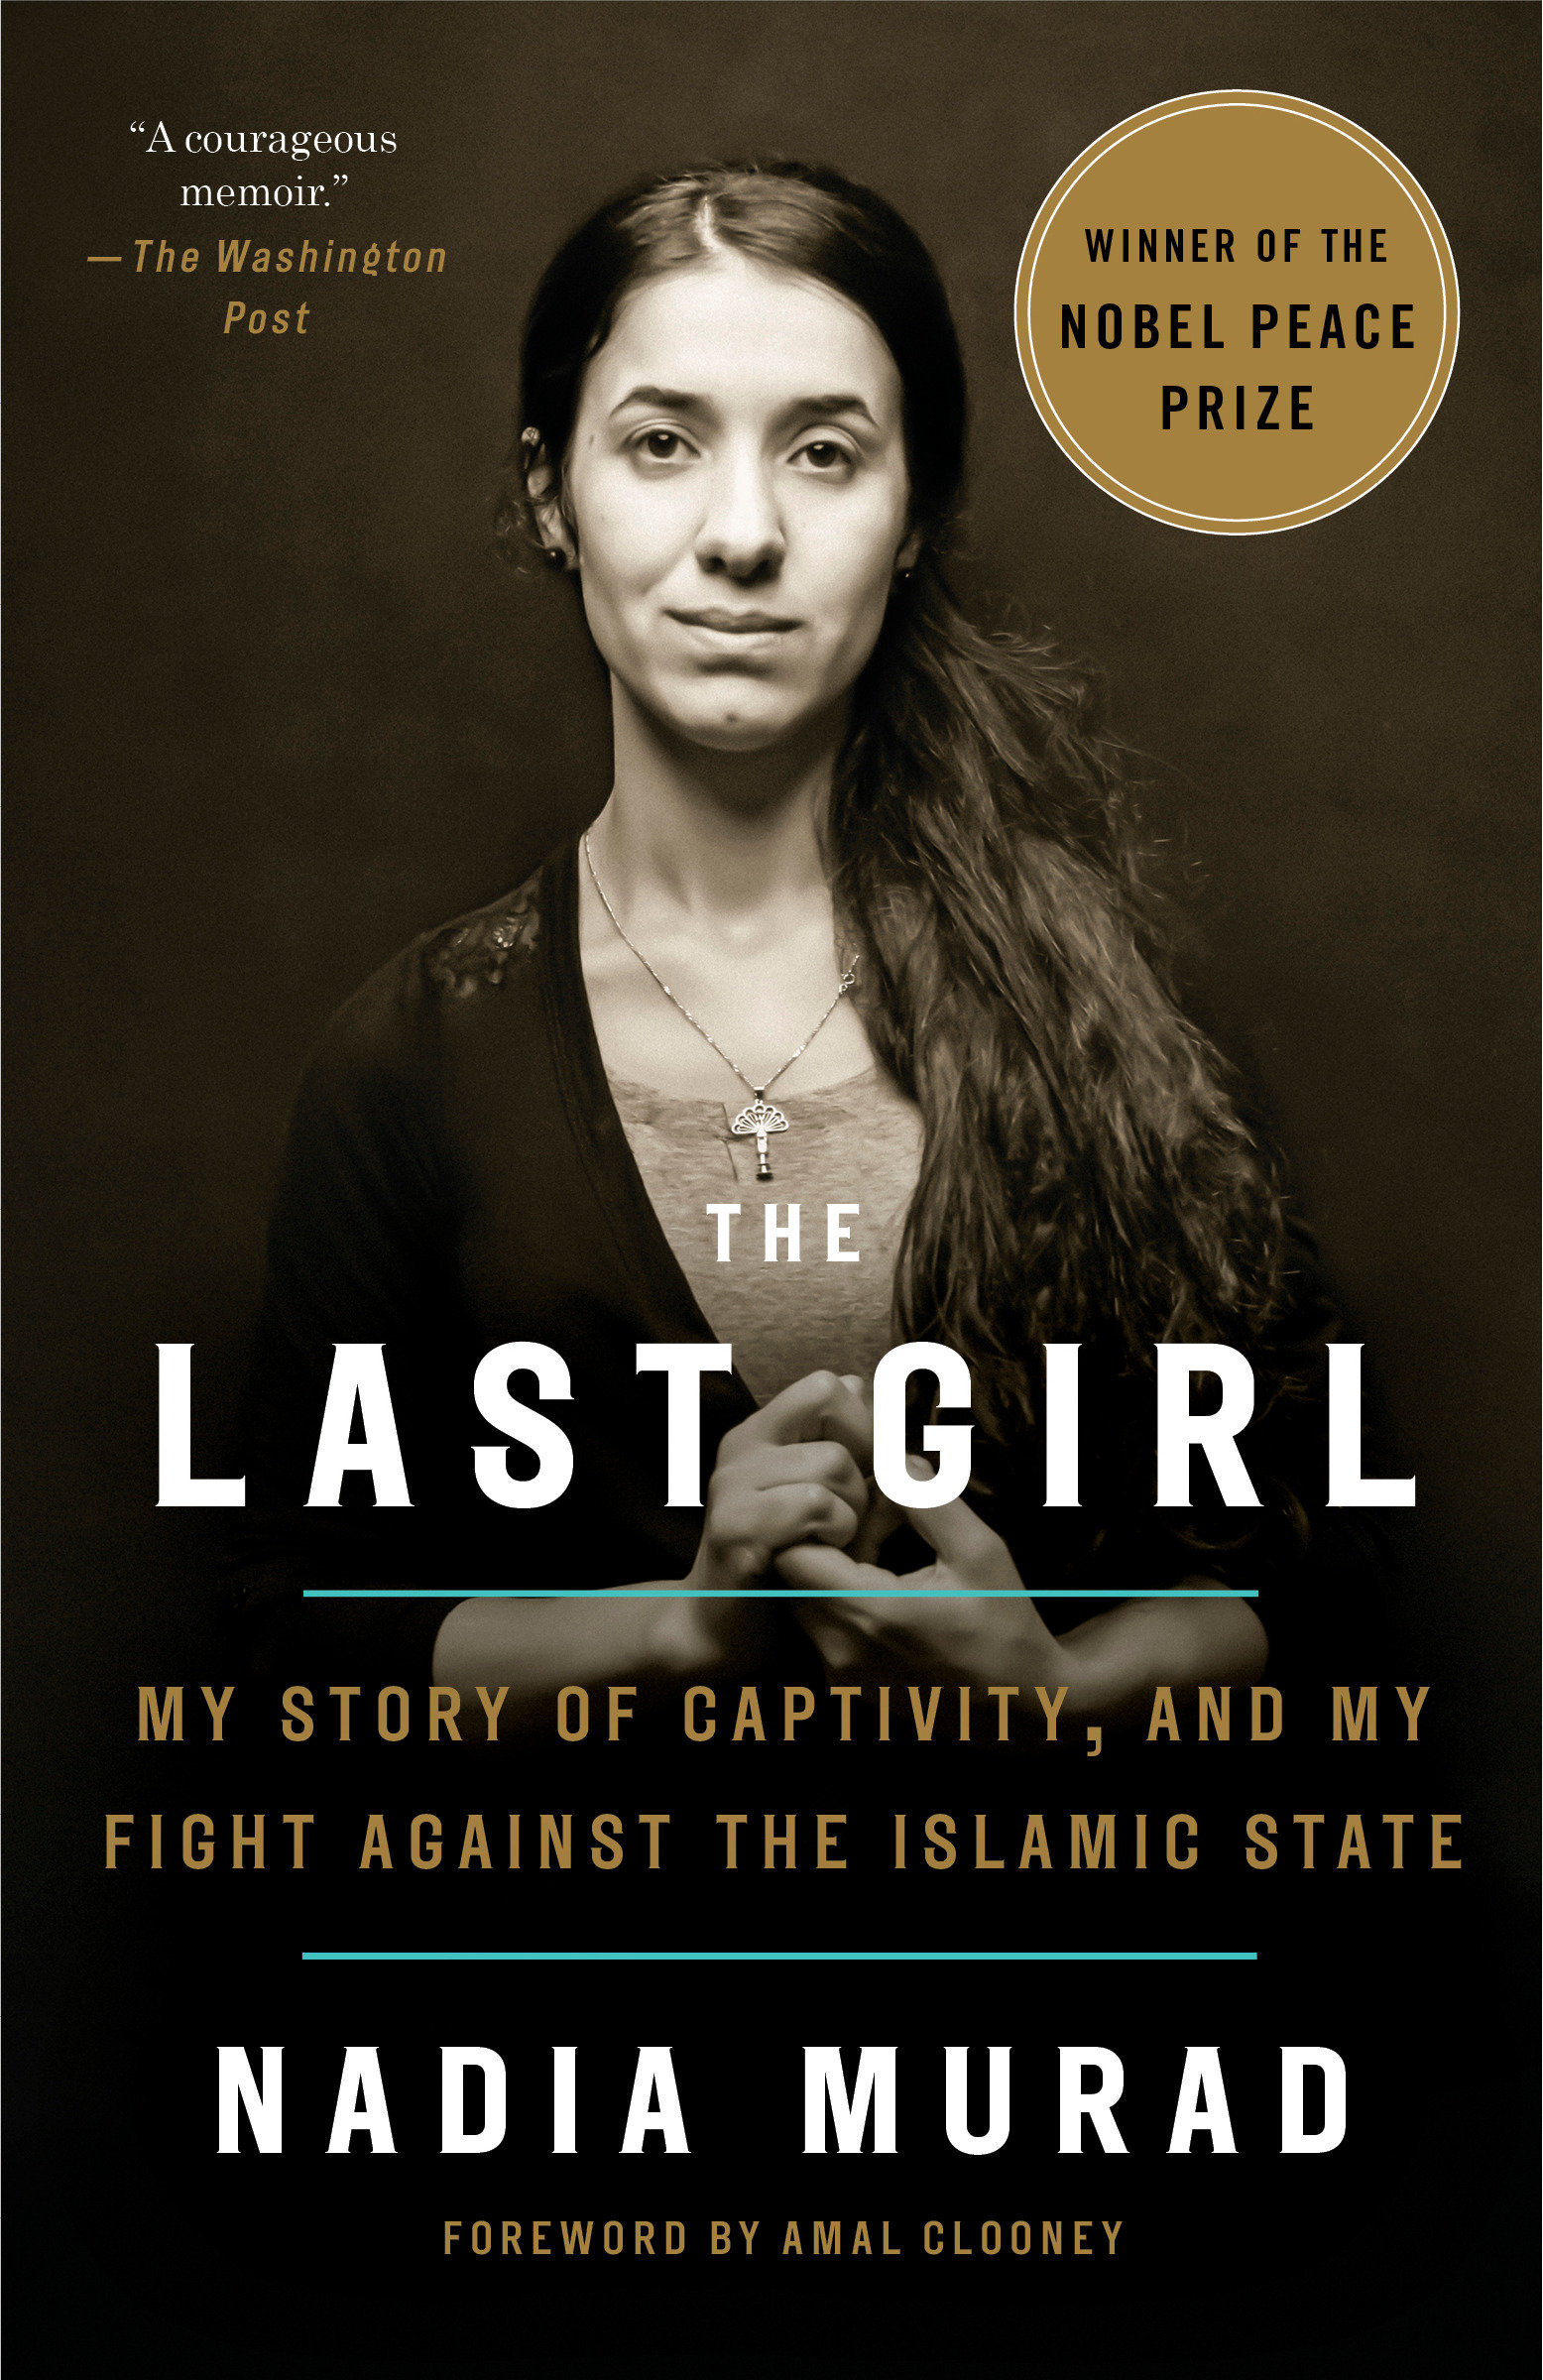 The last girl [eBook] : my story of captivity, and my fight against the Islamic State